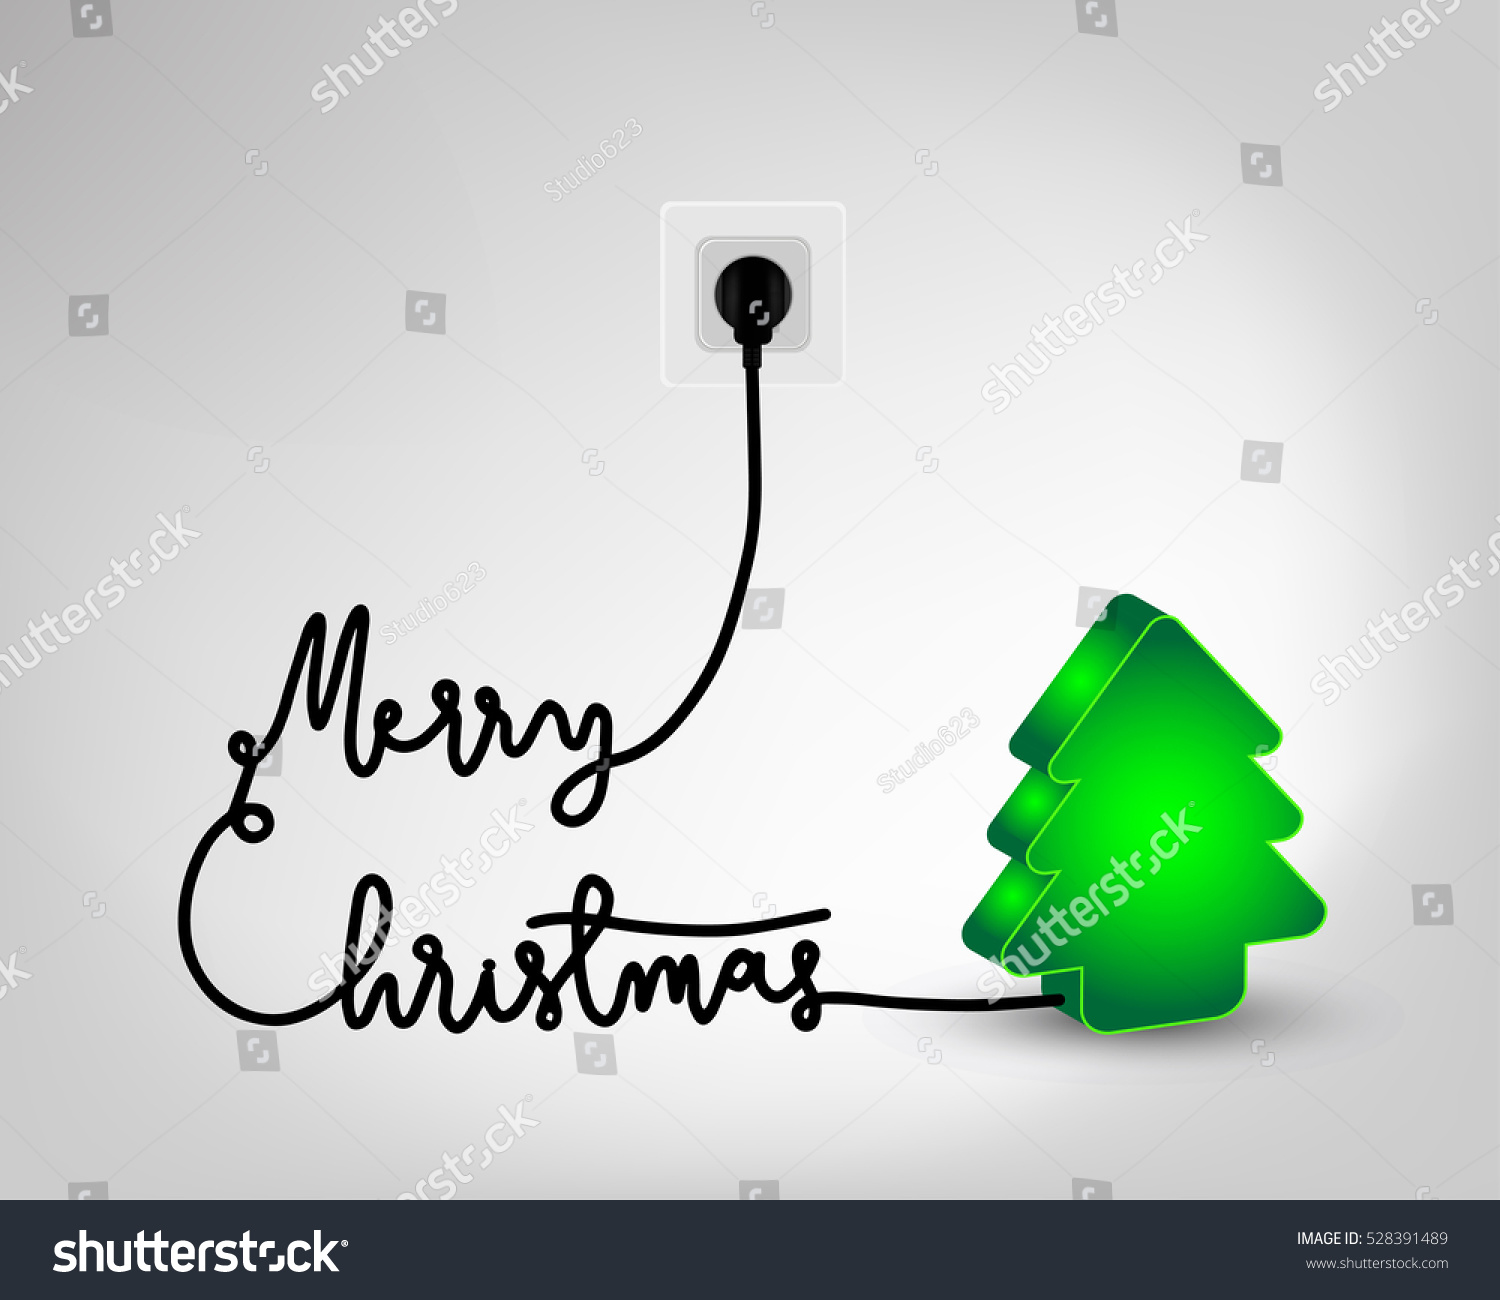 Design christmas tree light bulb merry stock vector 528391489 design of christmas tree light bulb with merry christmas wire plug for greeting card poster kristyandbryce Image collections